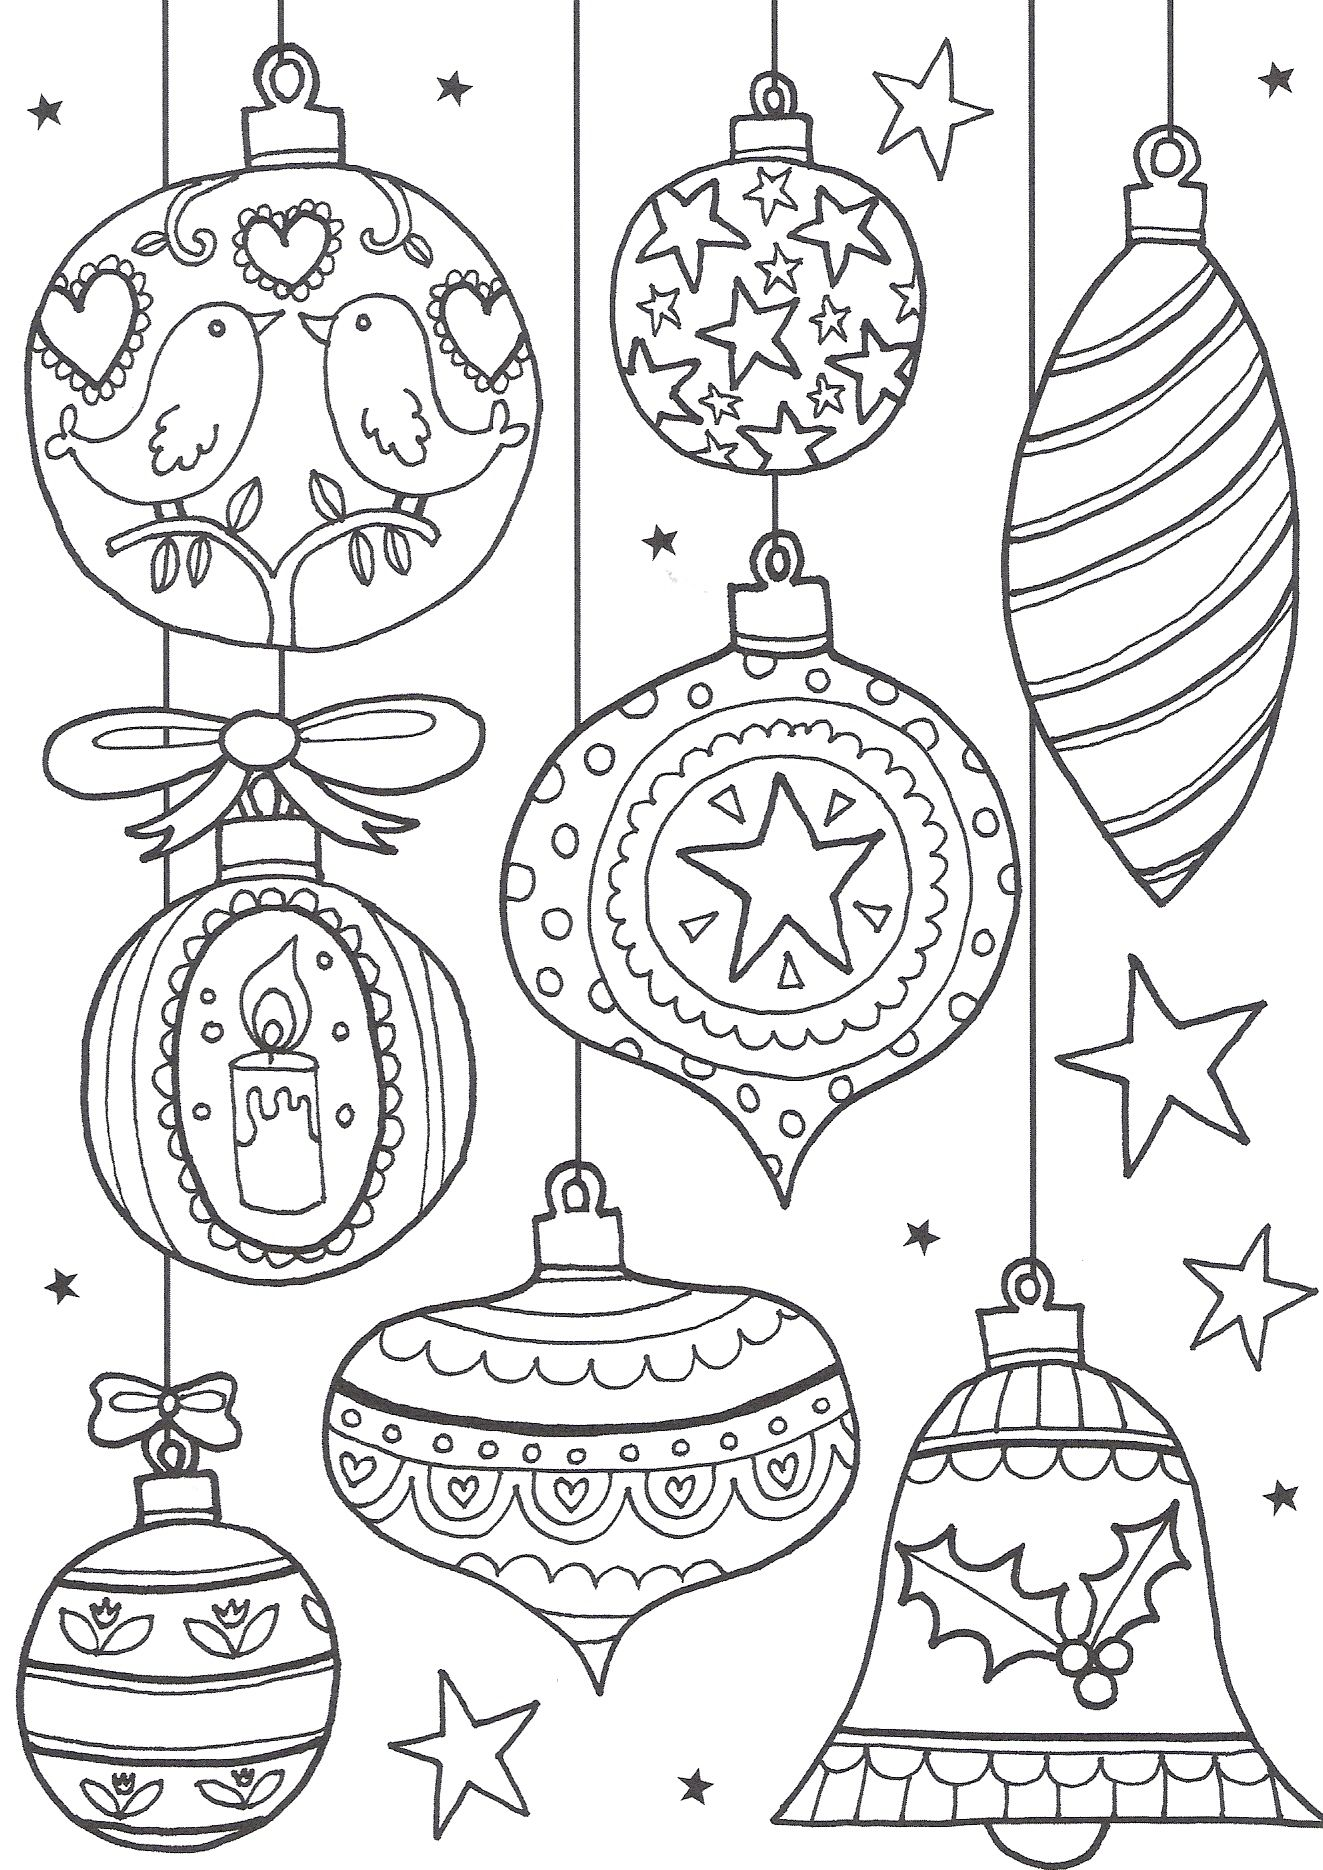 Christmas Colouring In Pages For Adults With Free The Ultimate Roundup